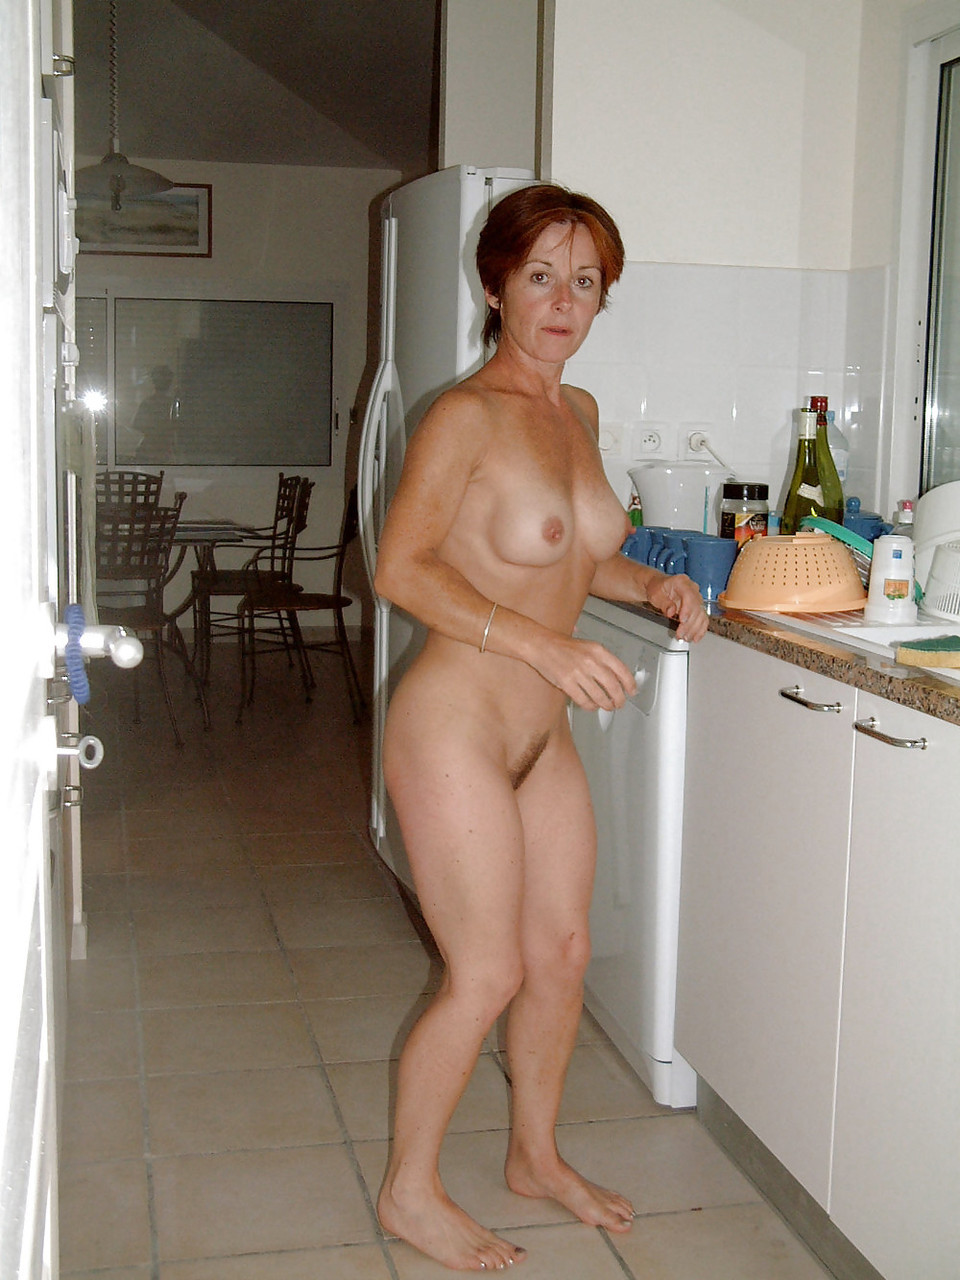 nude friend at home